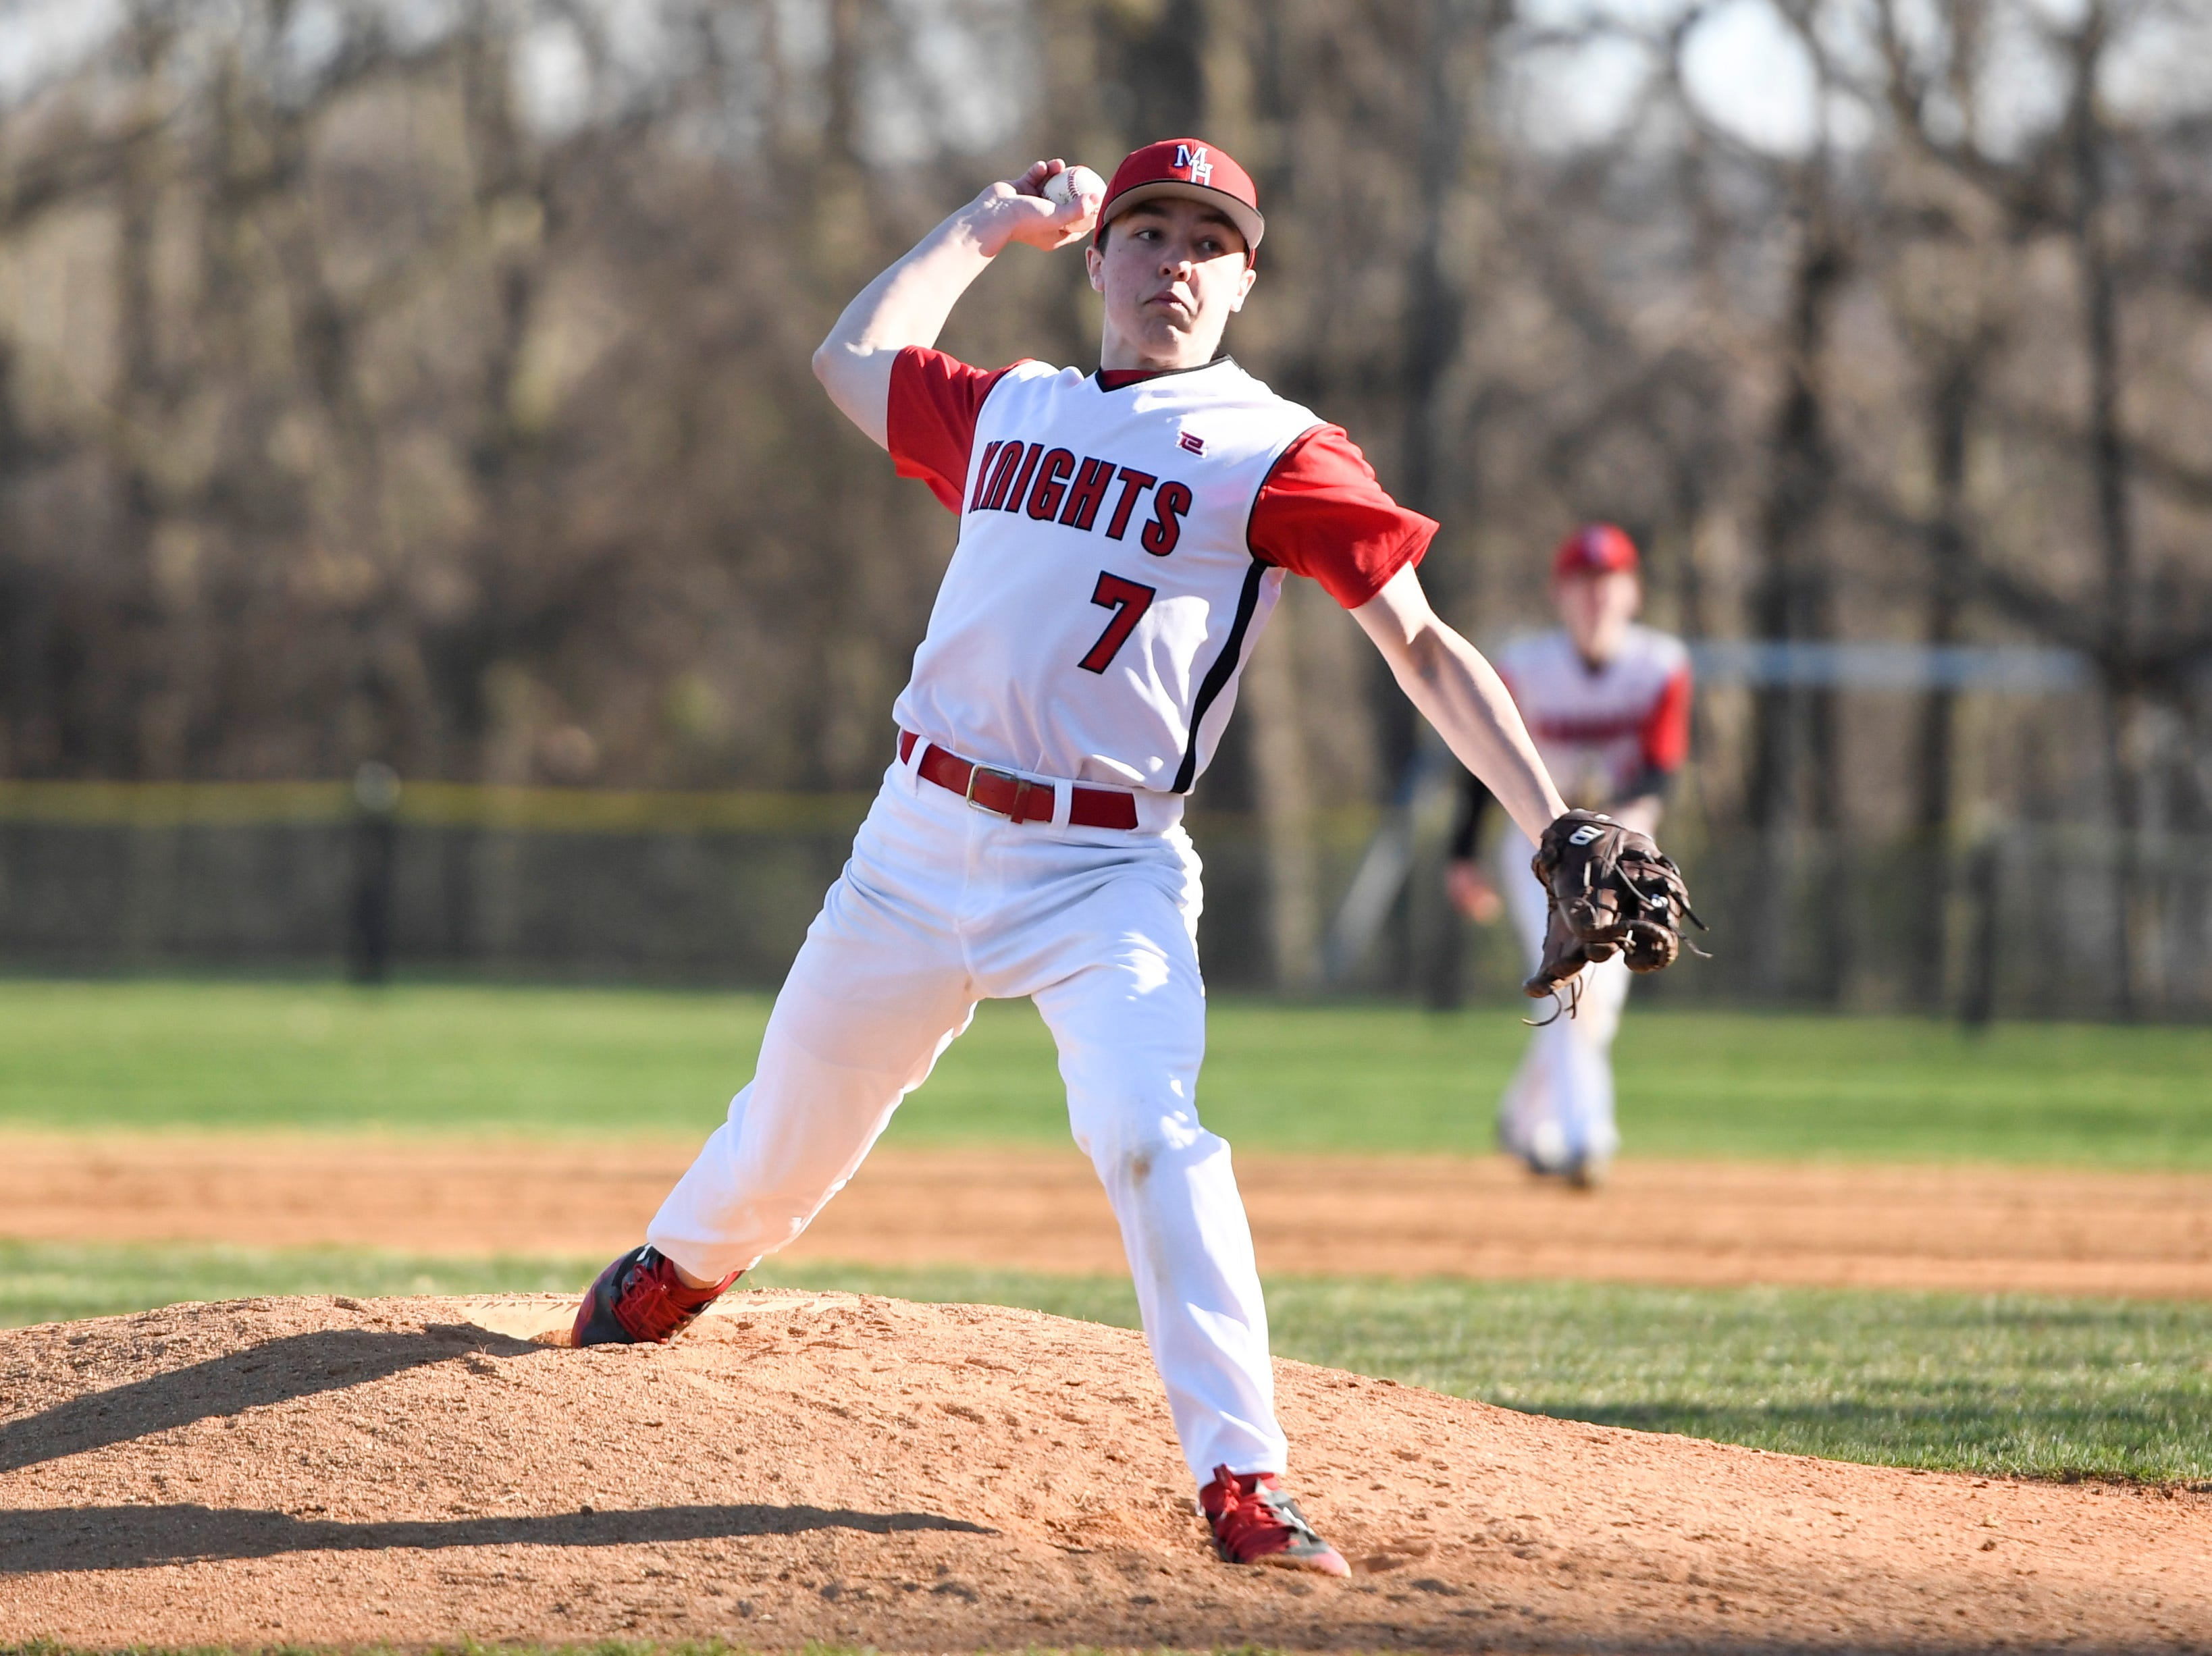 Morris Hills' Jason Panteliona pitches to Parsippany Hills during a game against Parsippany Hills on Wednesday, April 10, 2019, in Rockaway.